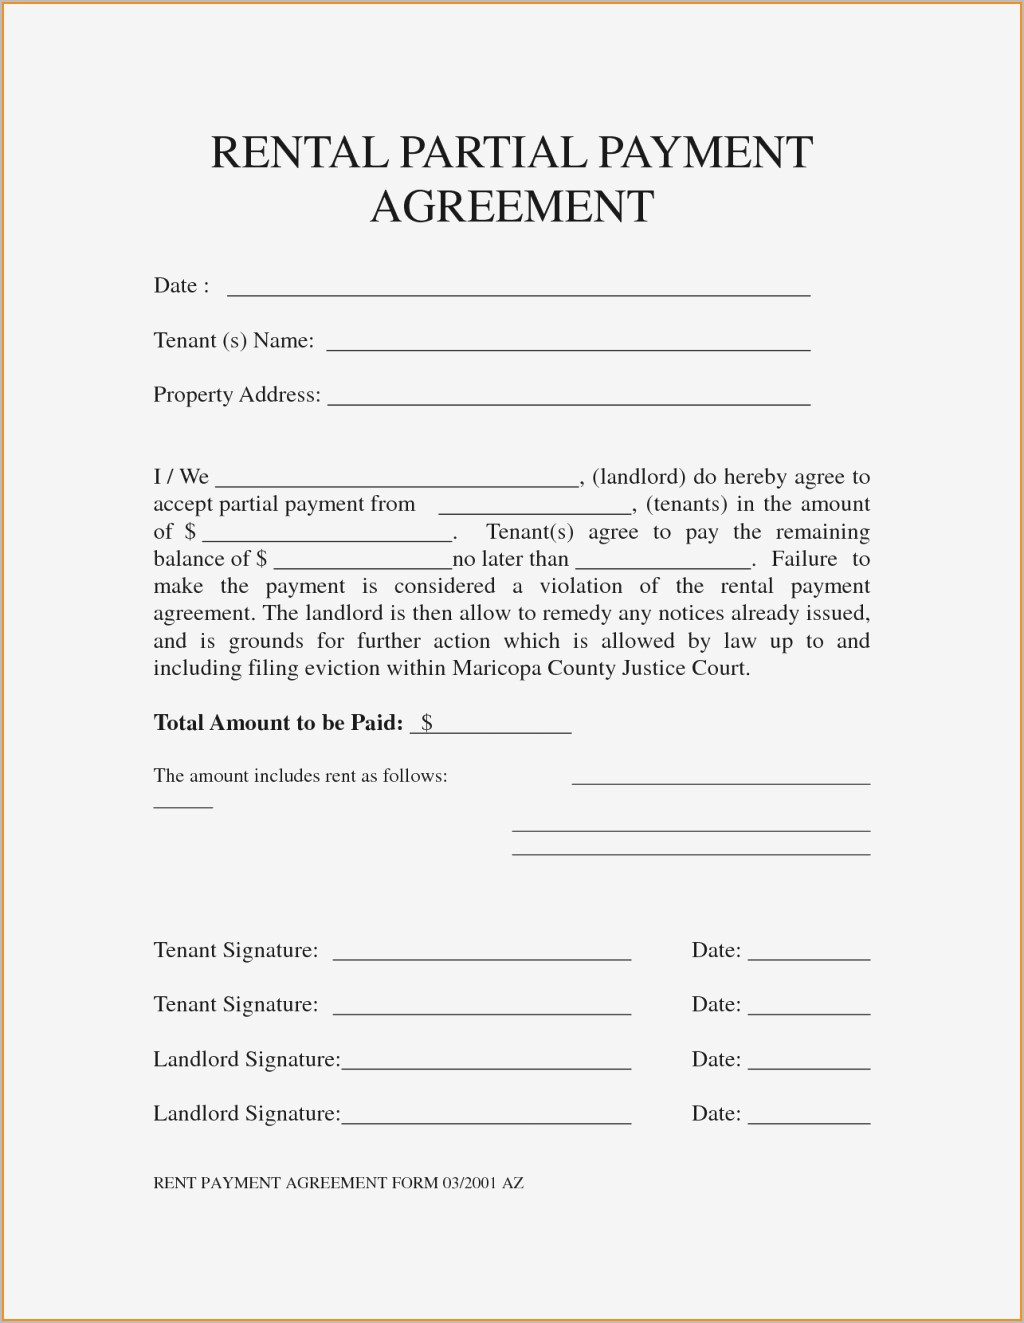 Payment Plan Proposal Letter Template - Payment Plan Agreement Pdf format